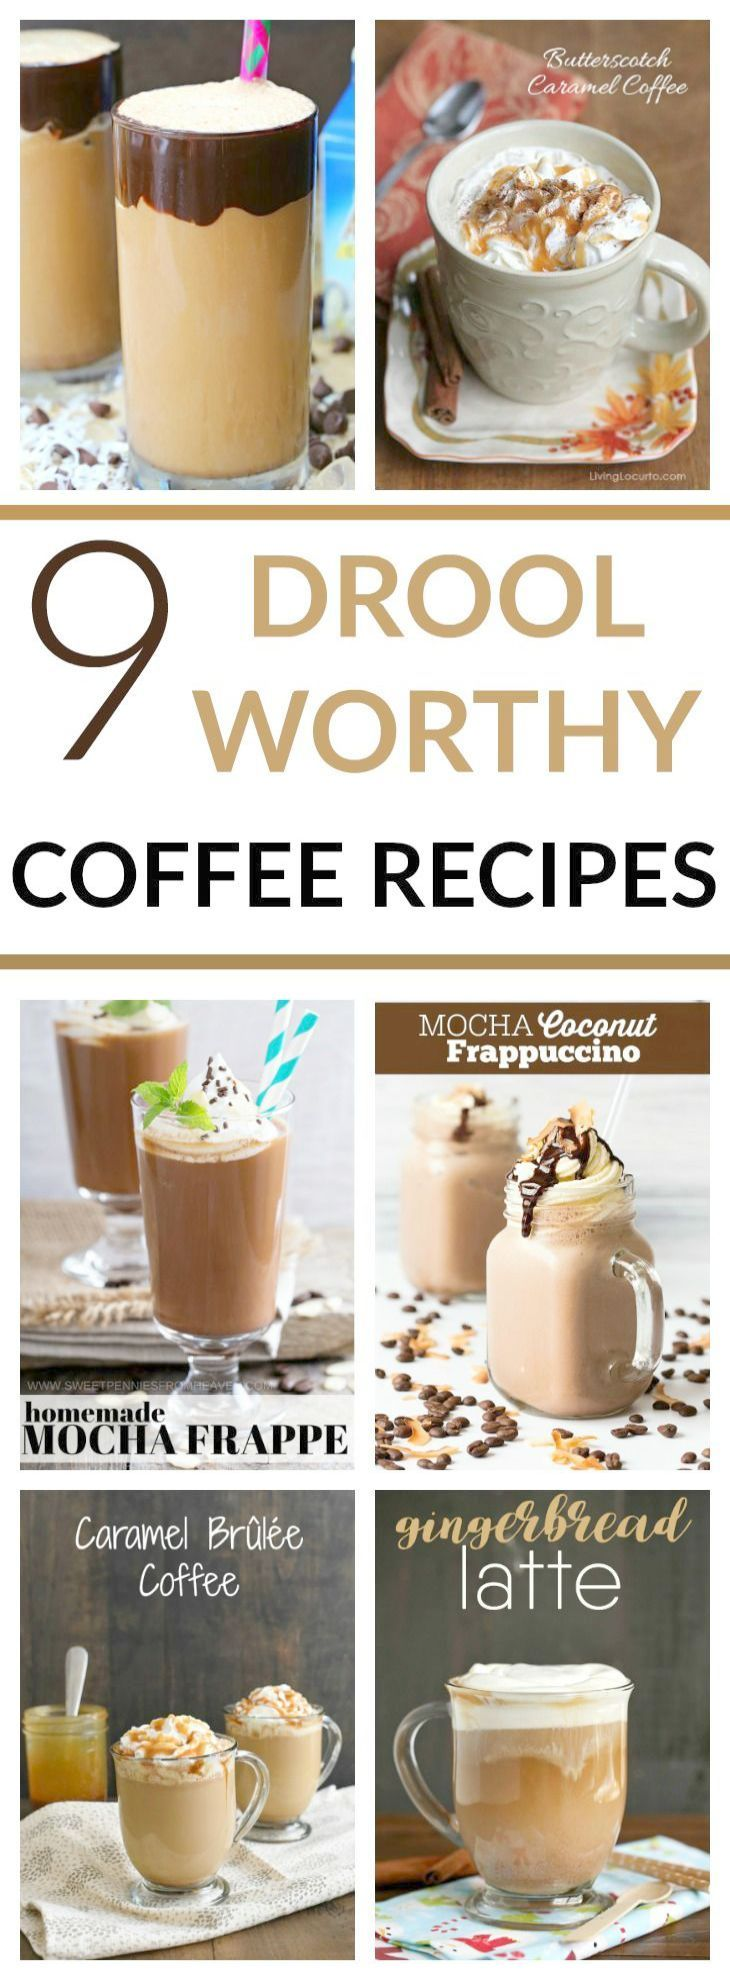 Coffee Ground Vomit Beyond Coffee Shops Near Me And Hours Rather Coffee Meets Bagel Tips For Guys Coffee Recipes Coffee Drink Recipes Ninja Coffee Bar Recipes